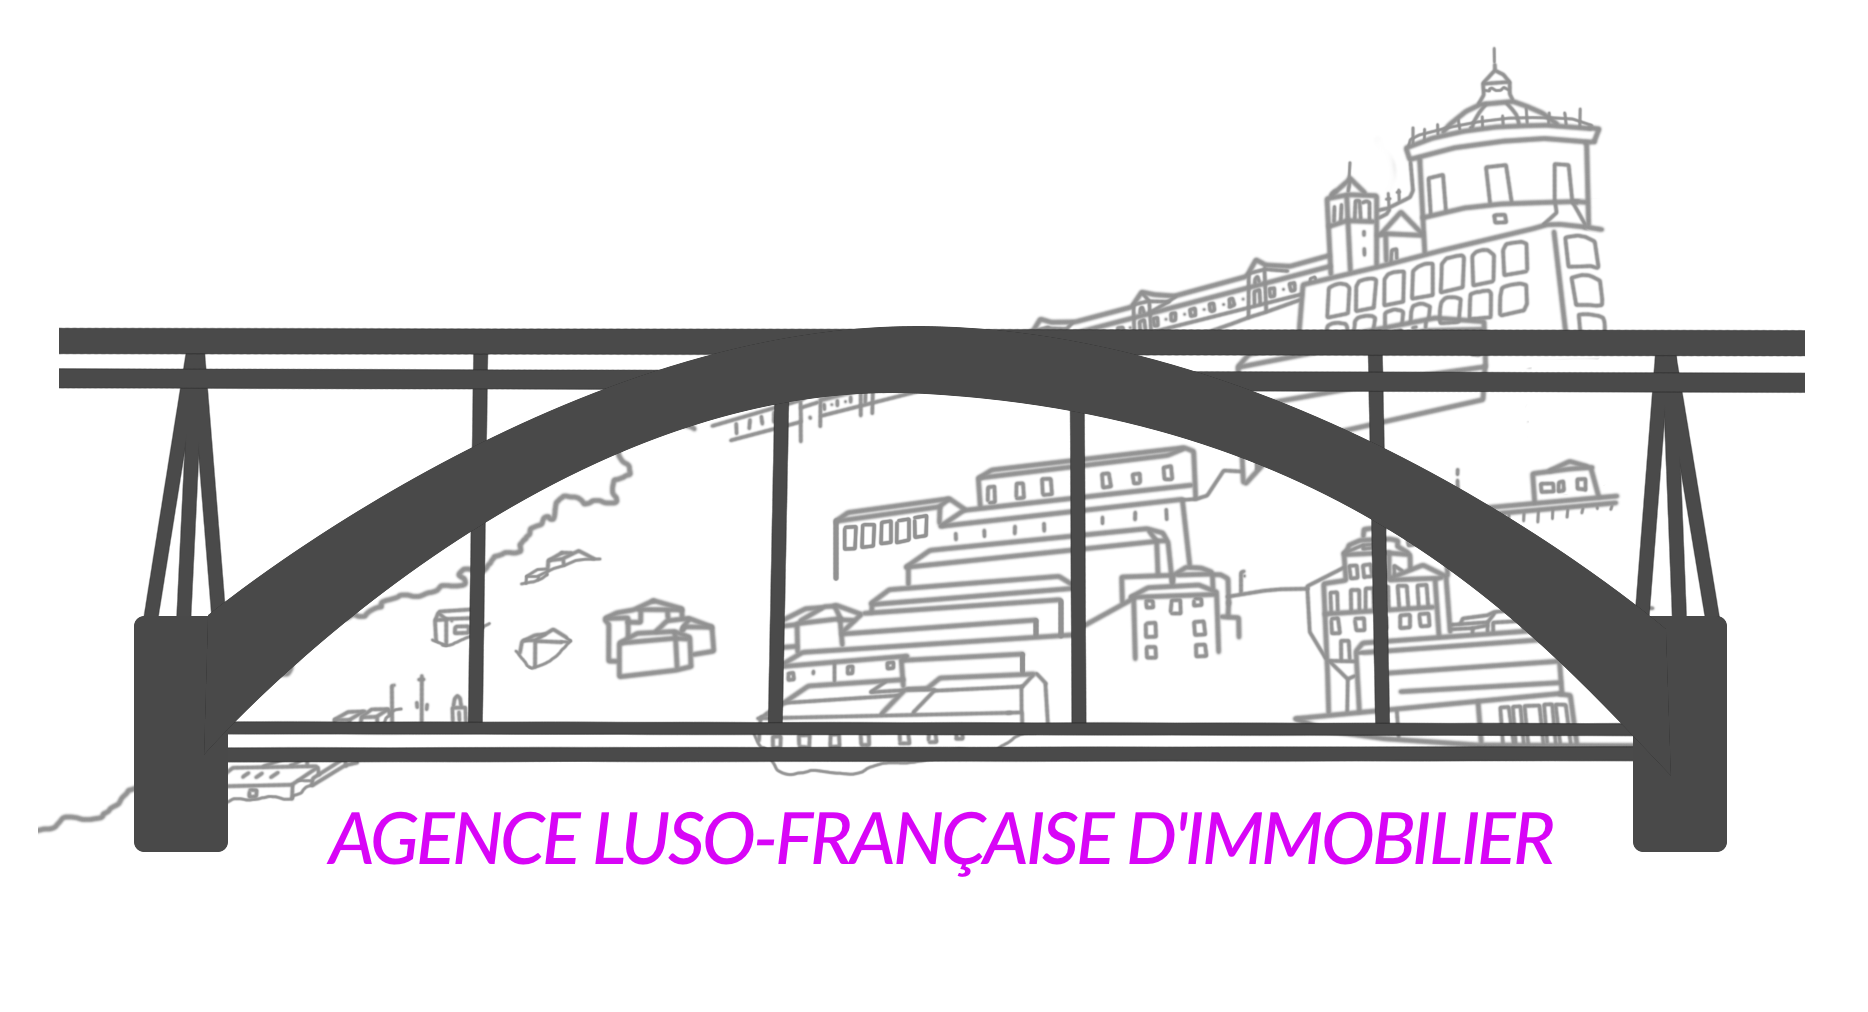 Agence luso-française d'immobilier